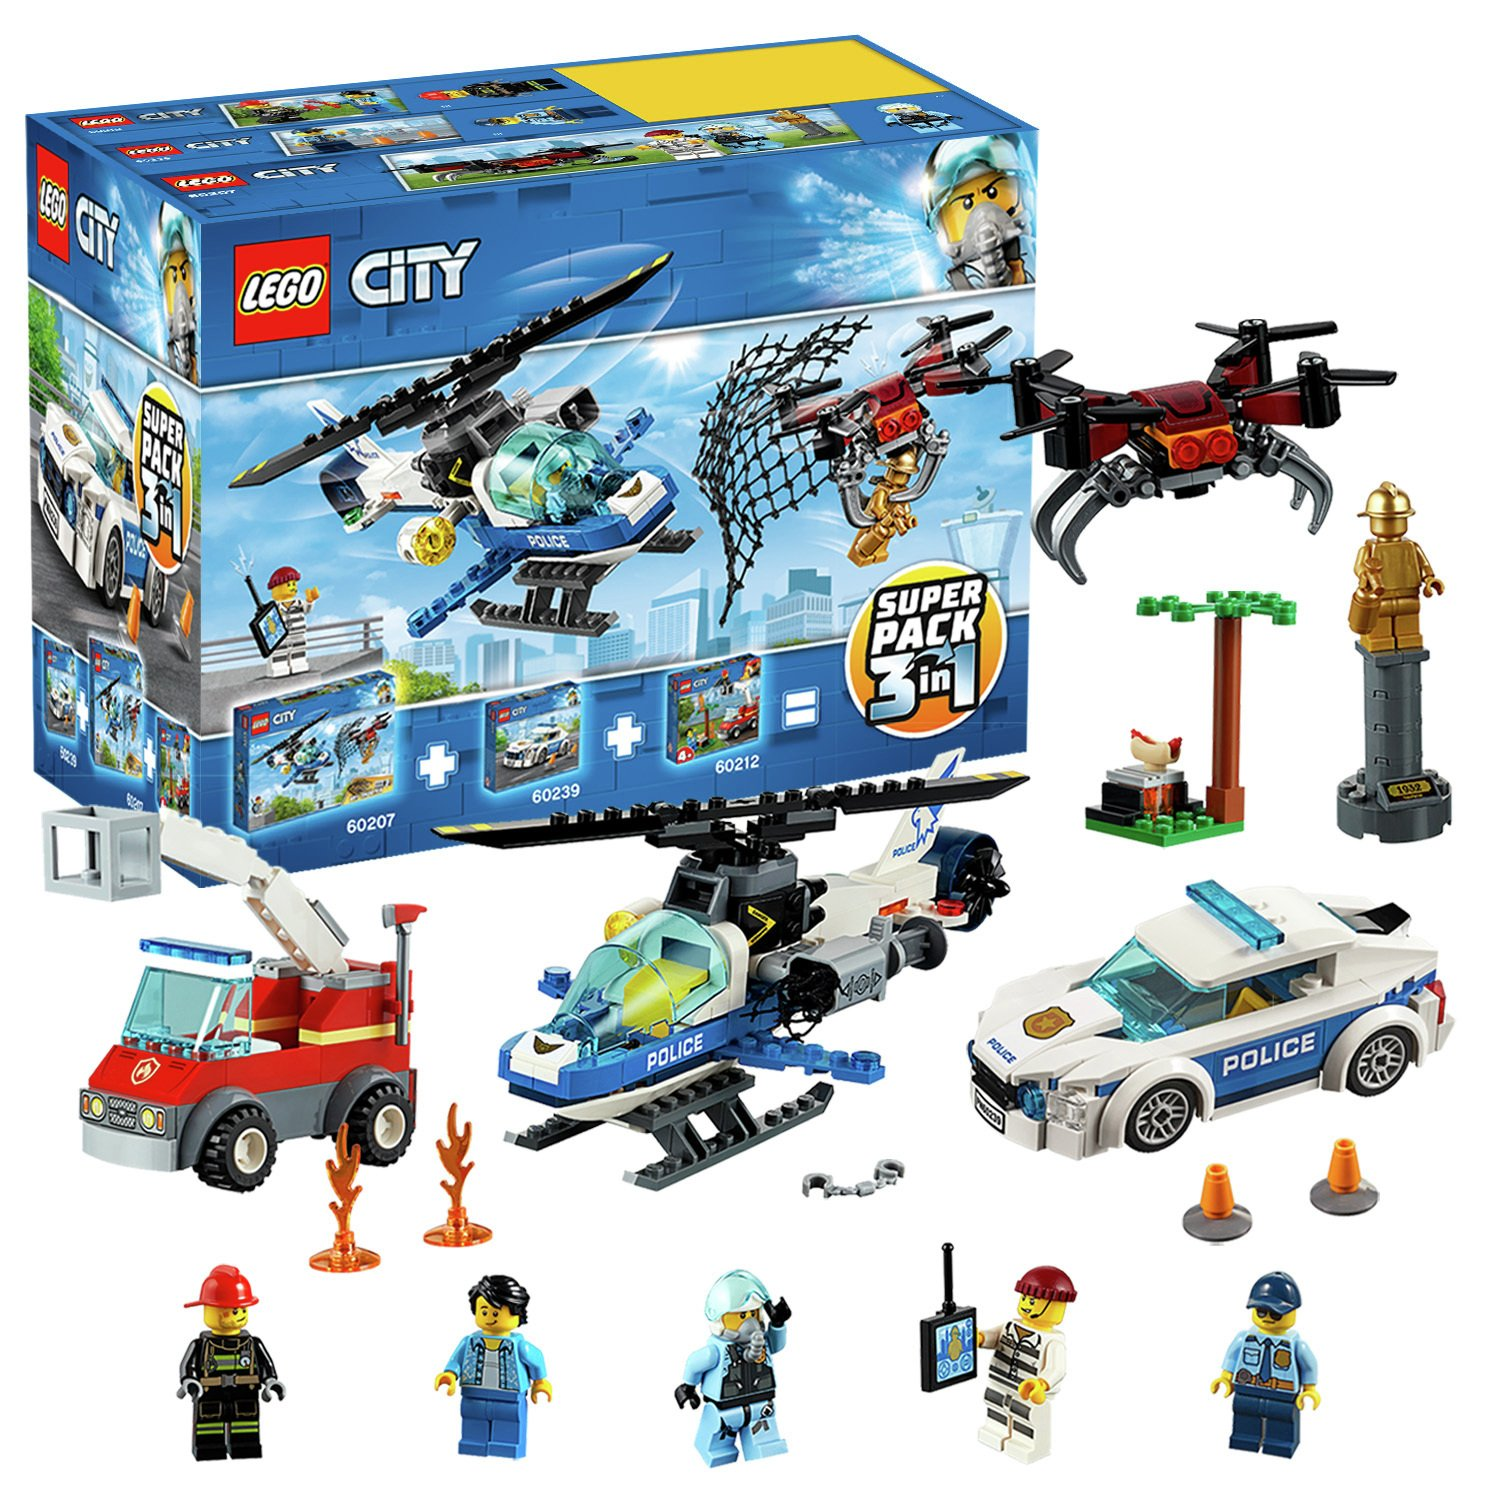 LEGO City Police 3 in 1 Super Pack - 66619